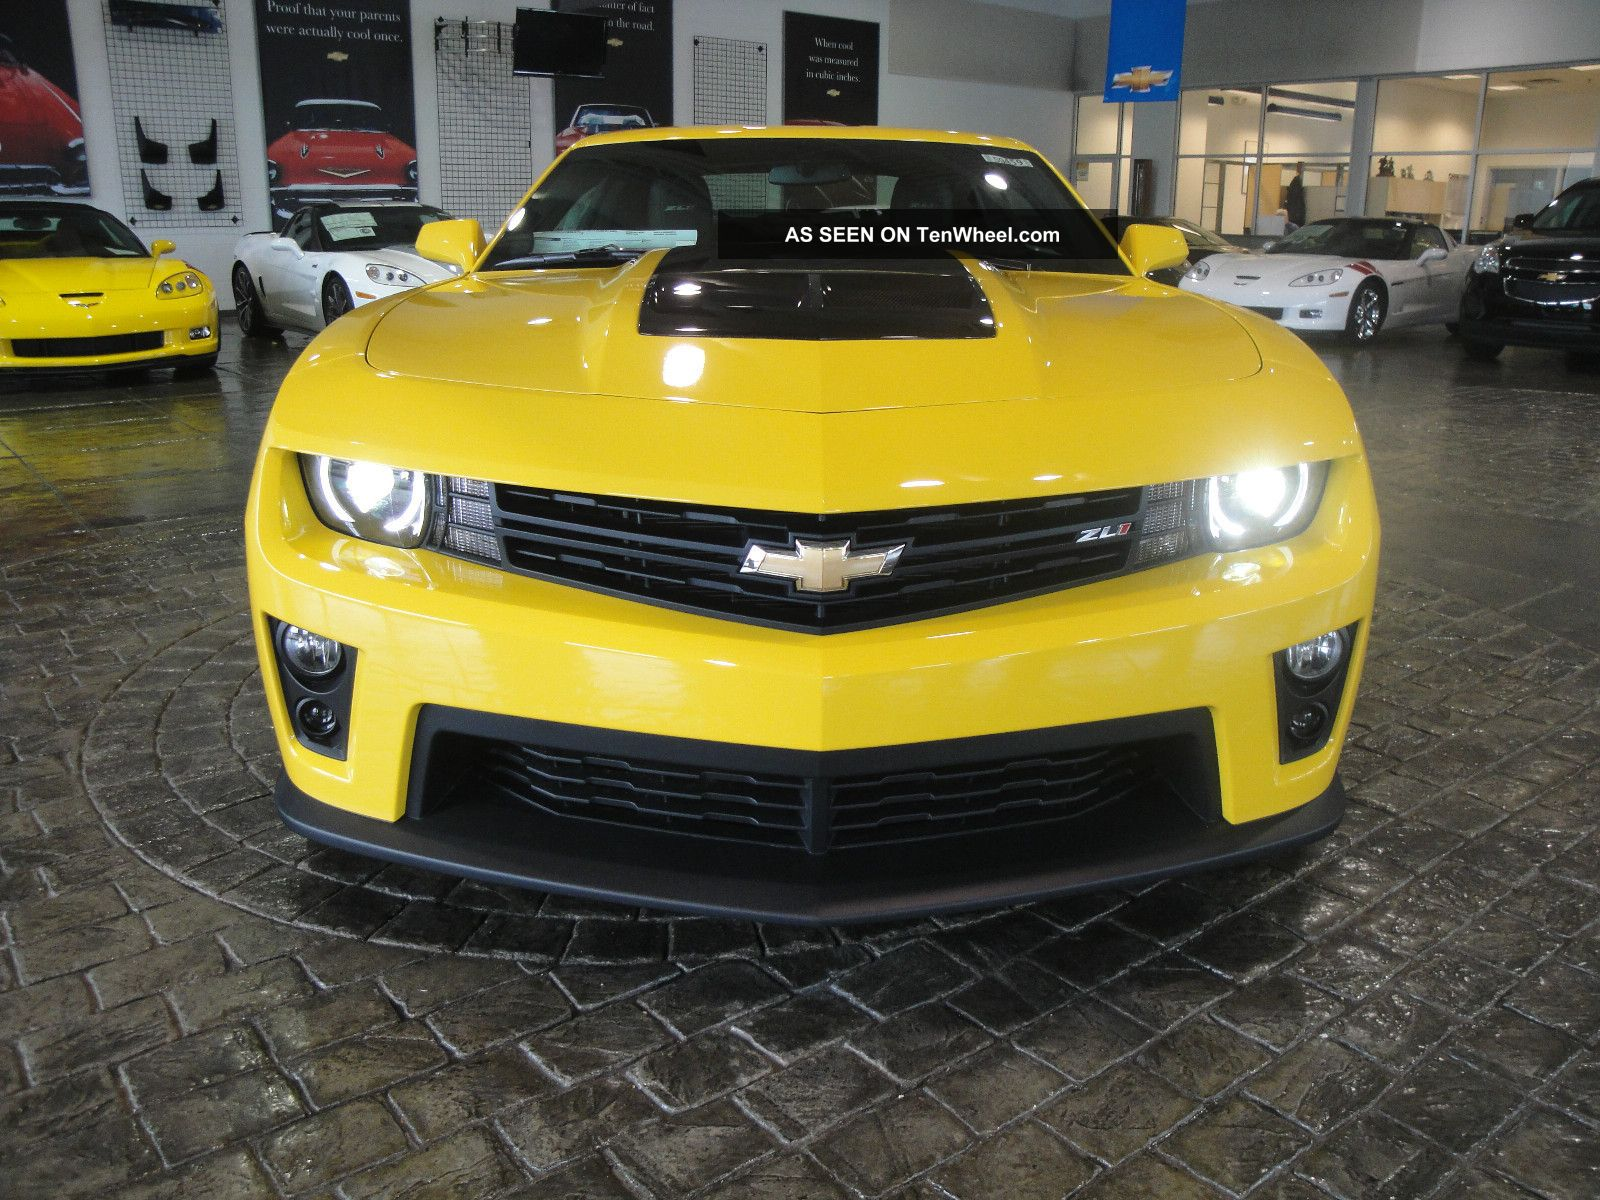 2013 Rally Yellow Supercharged Camaro Zl1 Automatic Carbon